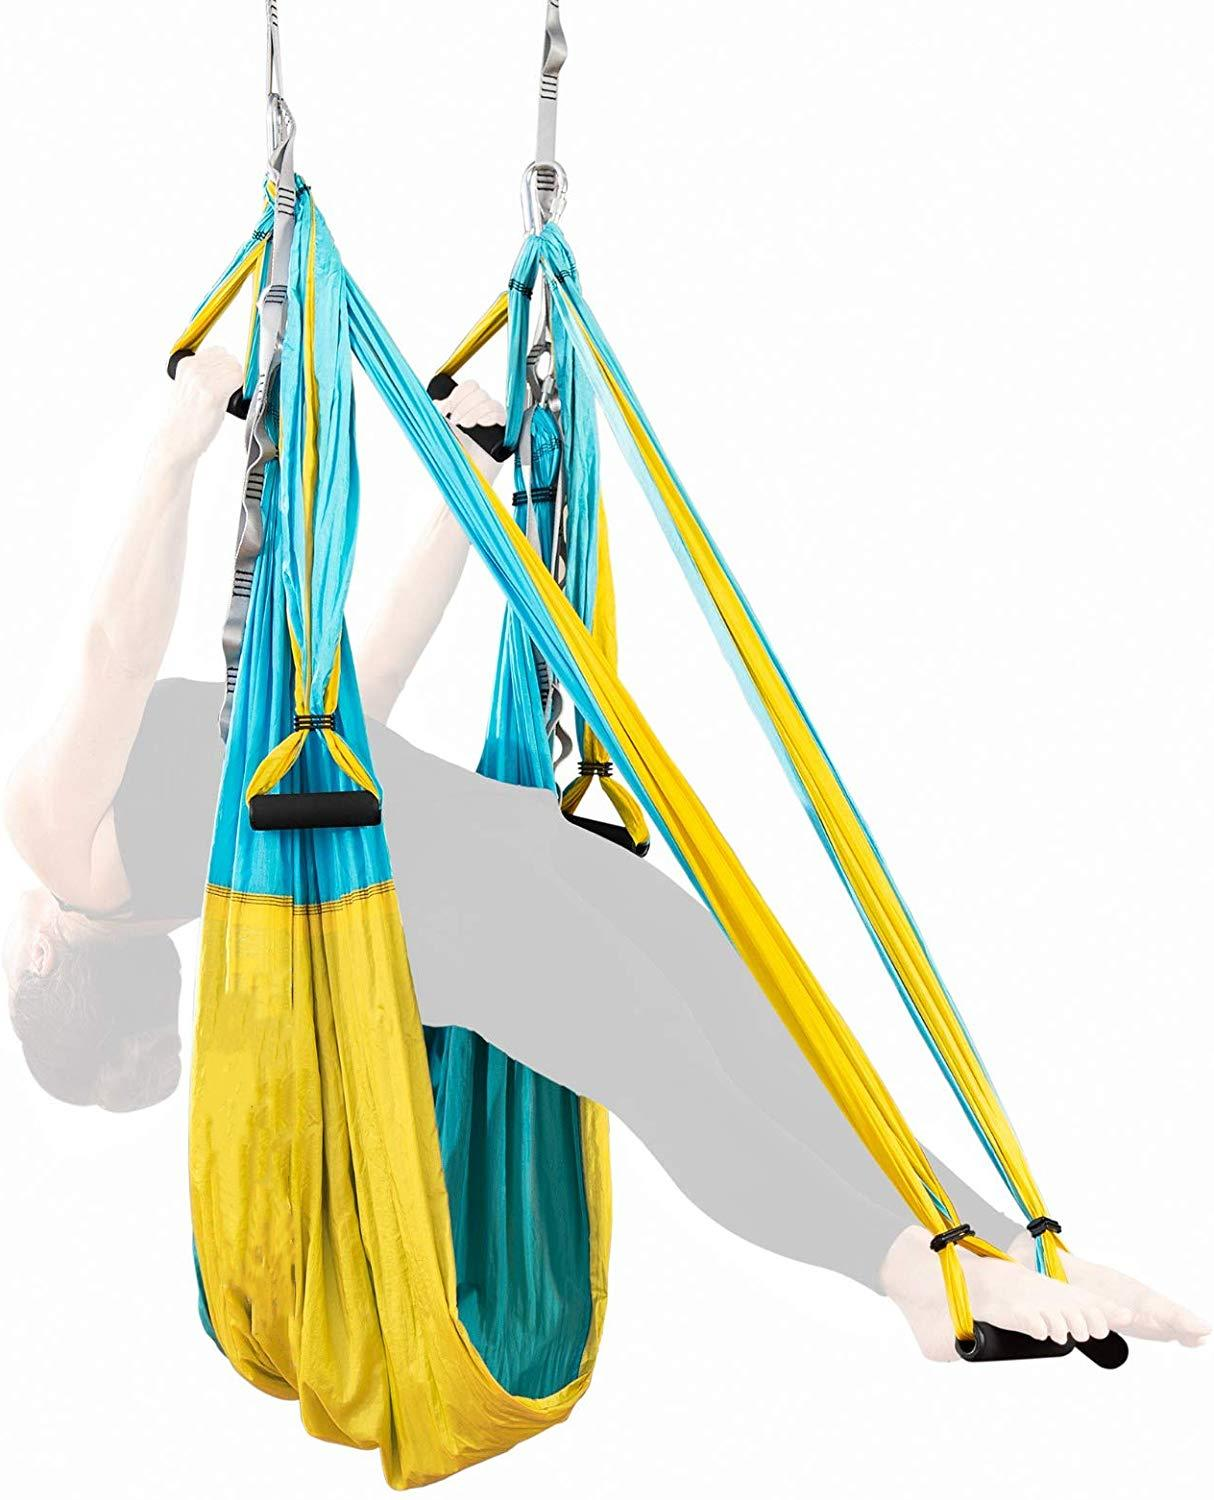 20 Color 2.5*1.5 M Aerial Yoga Hammock Anti gravity Inversion Swing Trapeze Yoga Extend Belt Ceiling Hanging Tray for Home Gym|Yoga Belts|   - AliExpress